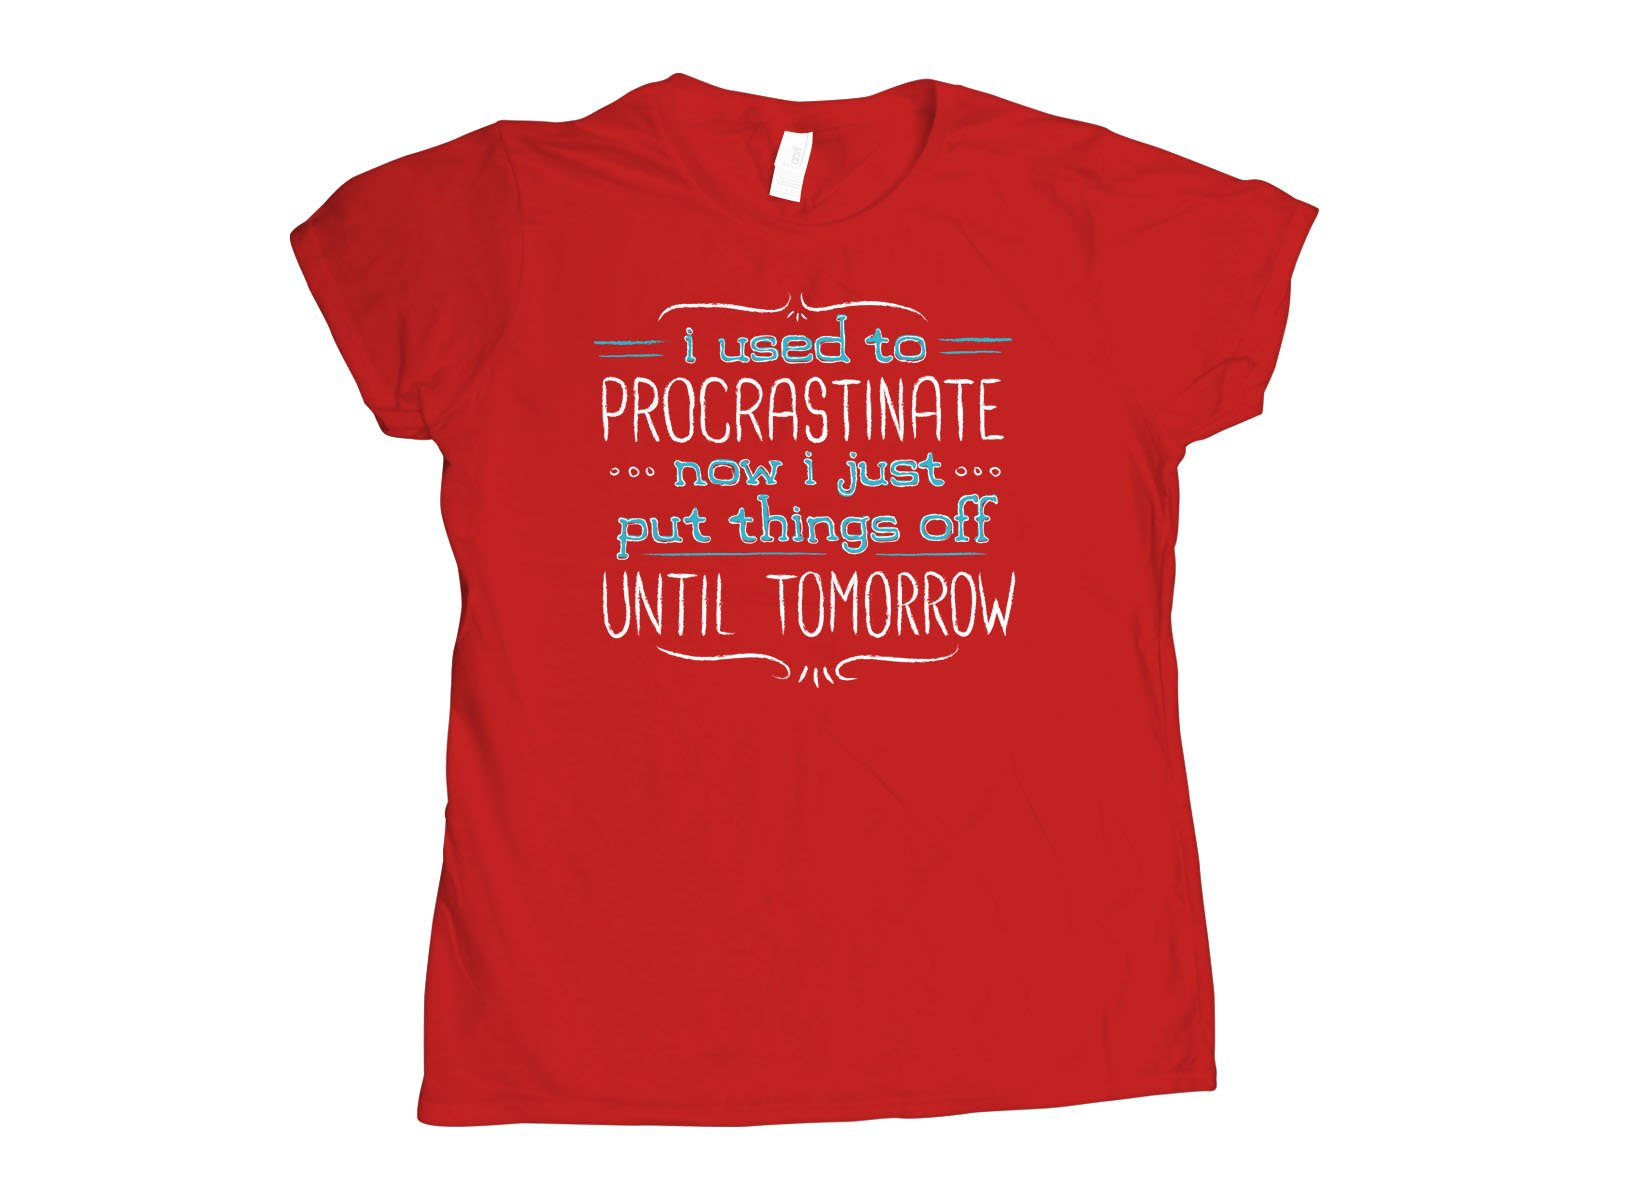 Now I Just Put Things Off Until Tomorrow on Womens T-Shirt